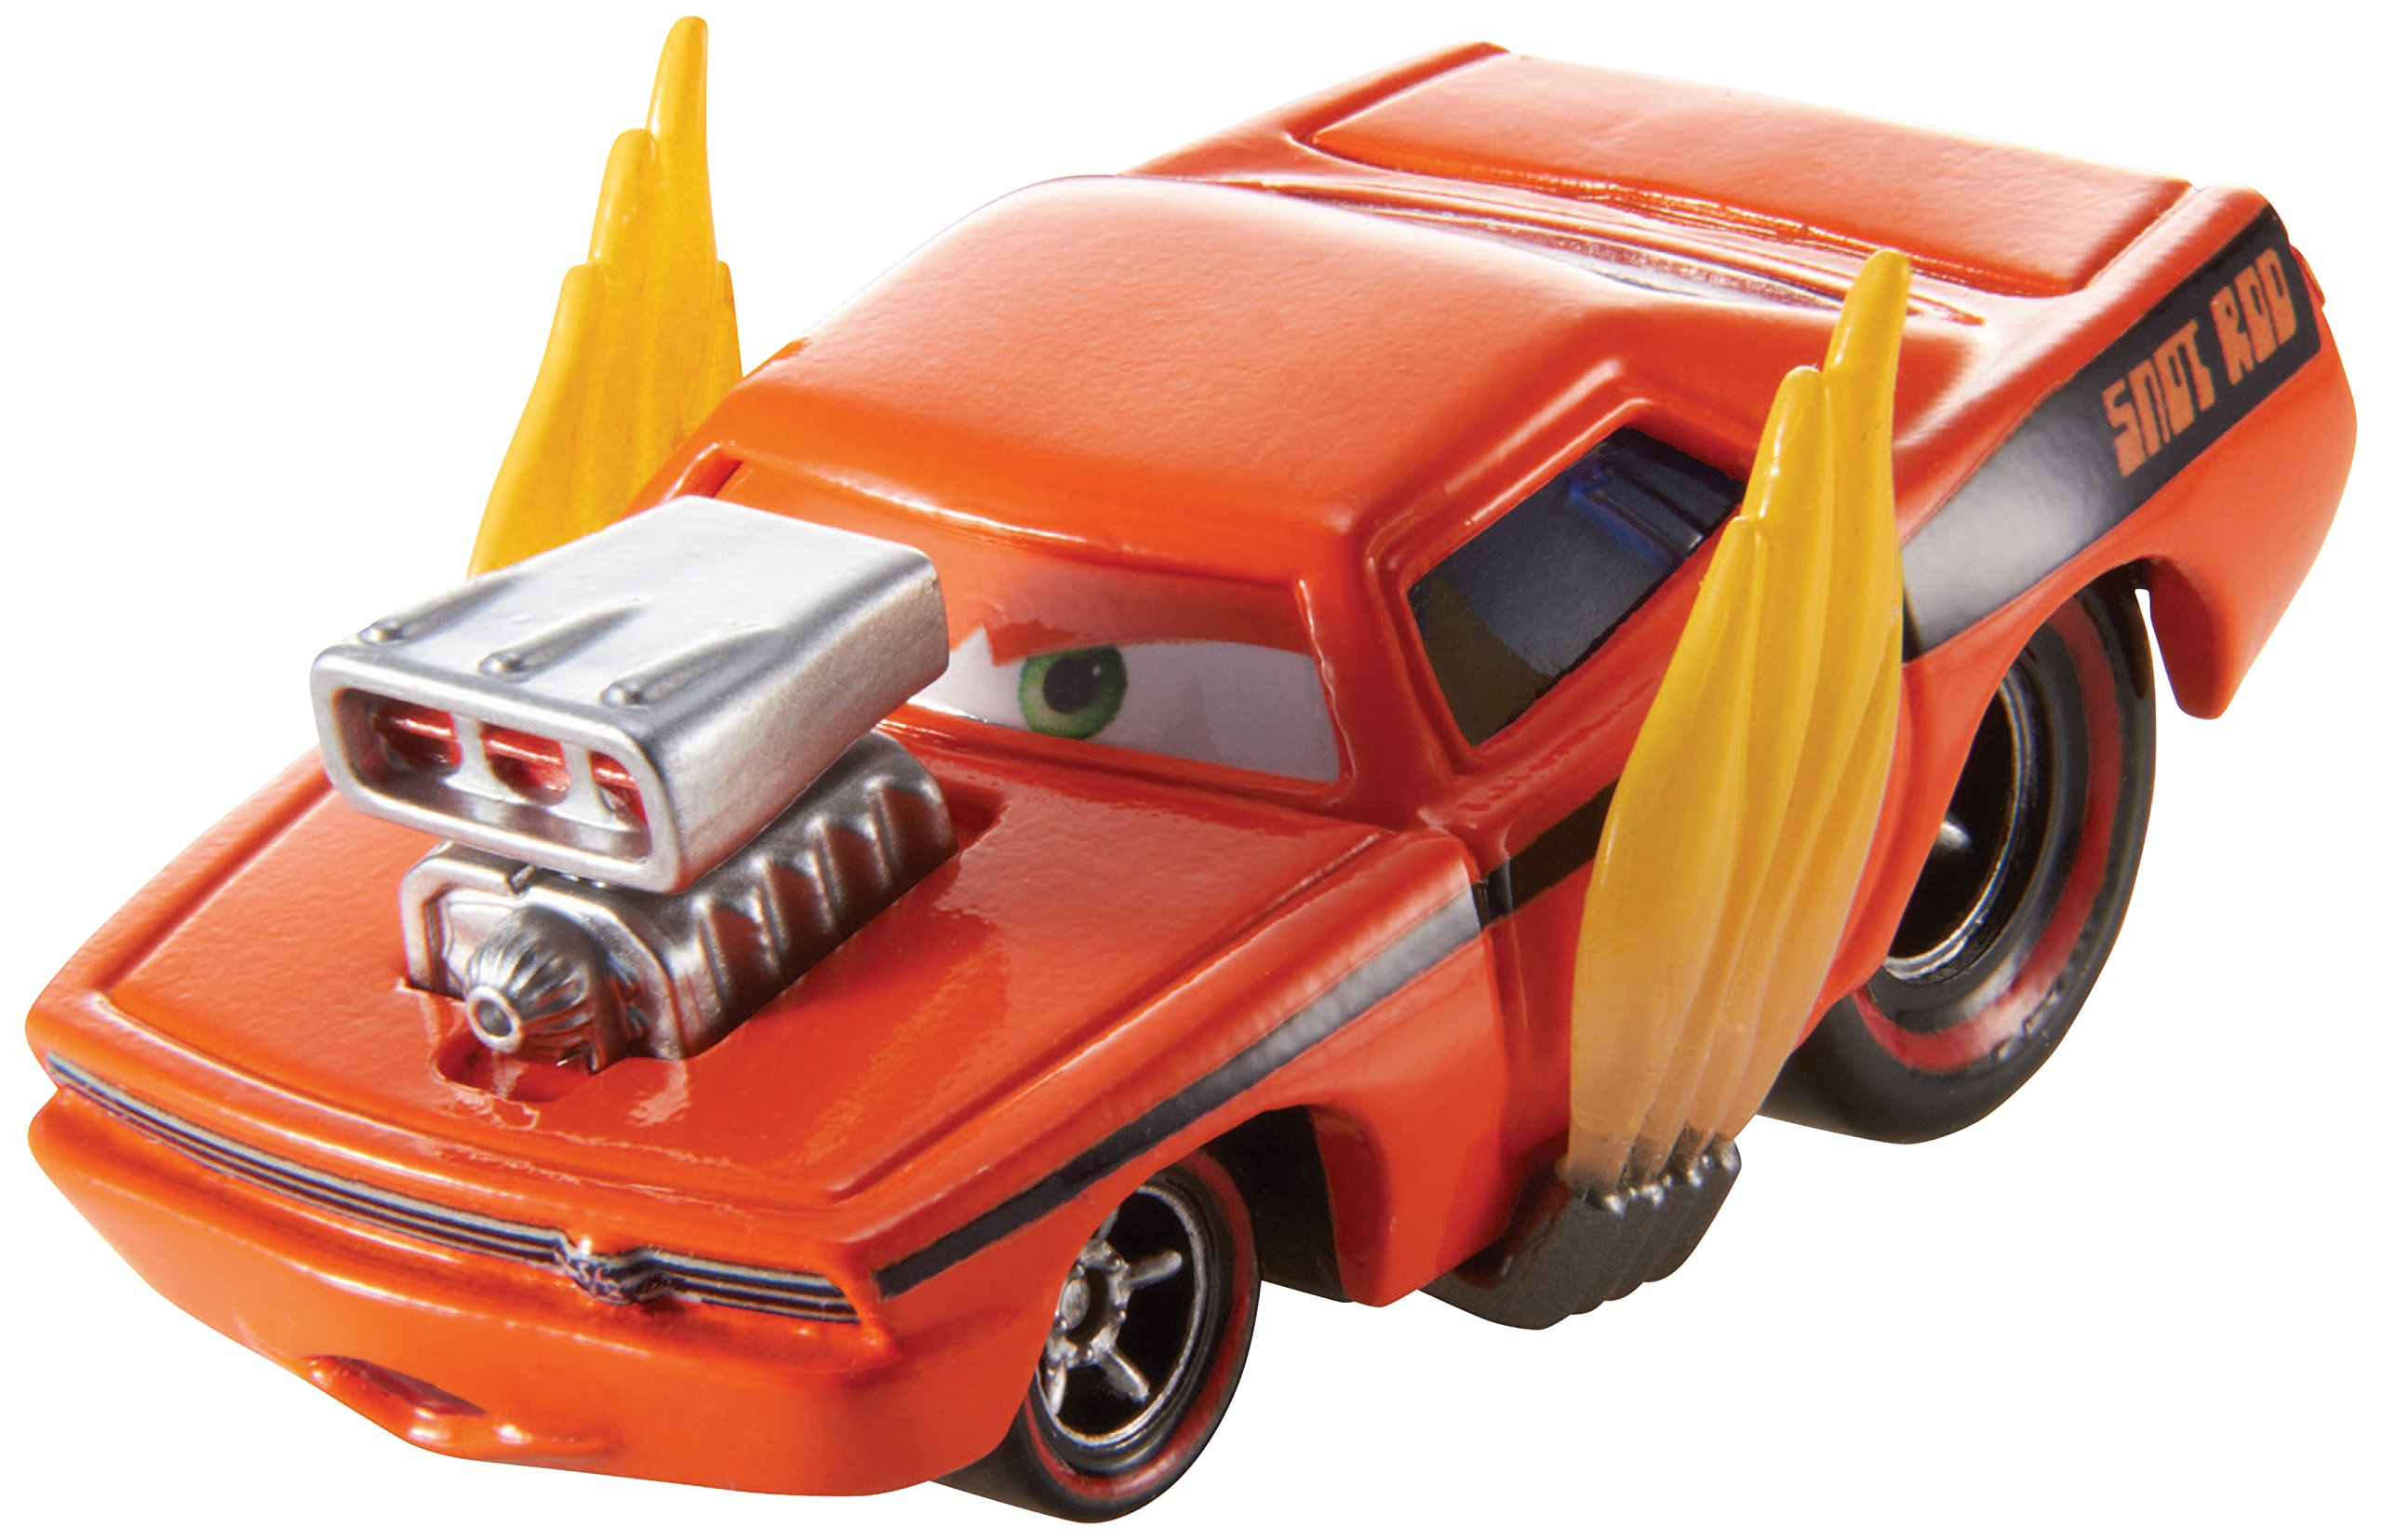 Disney Pixar Cars Snot Rod With Flames Diecast Vehicle Buy